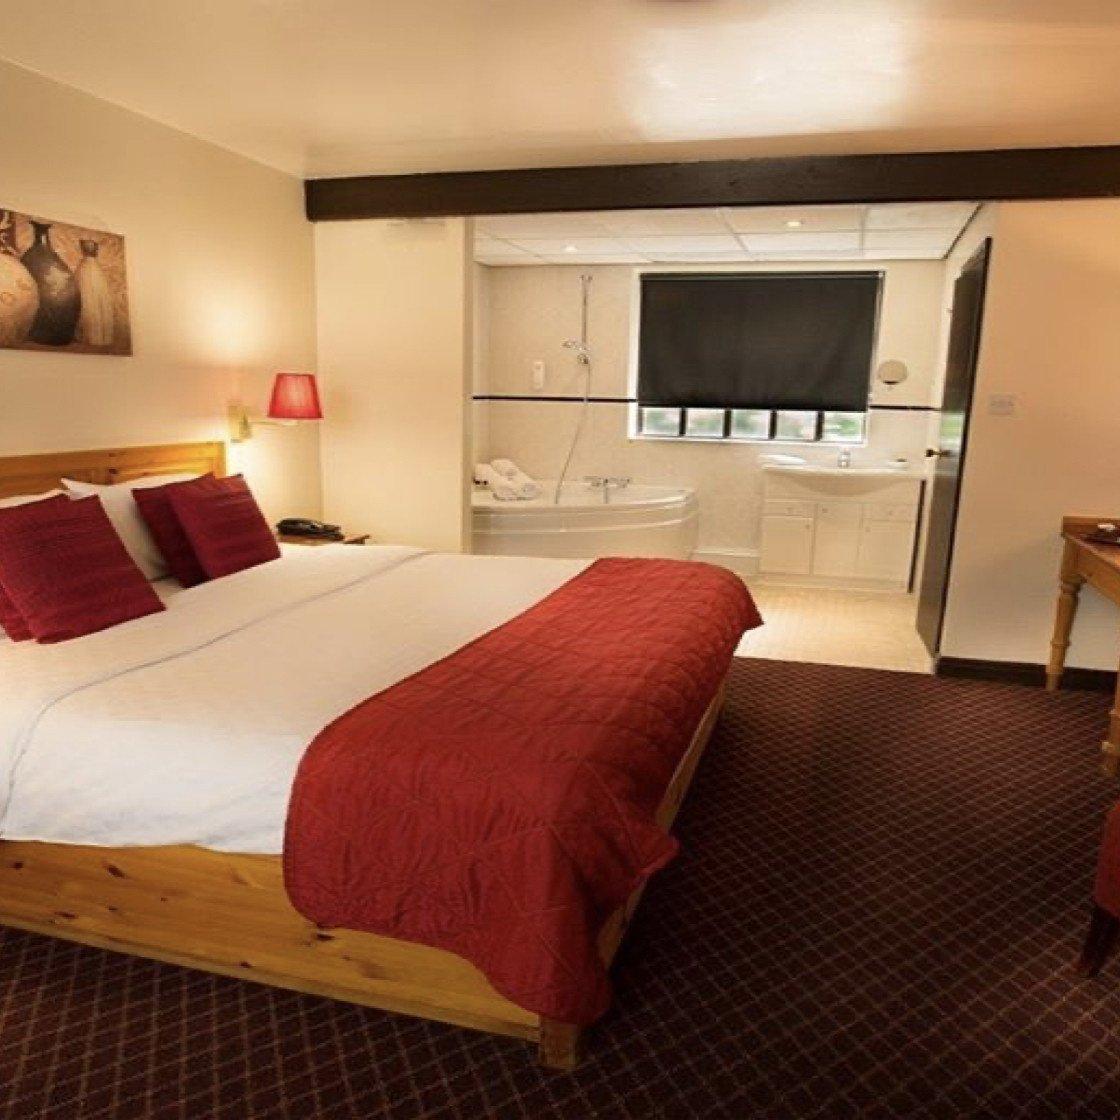 Executive room at Guy's Canalside Lodge